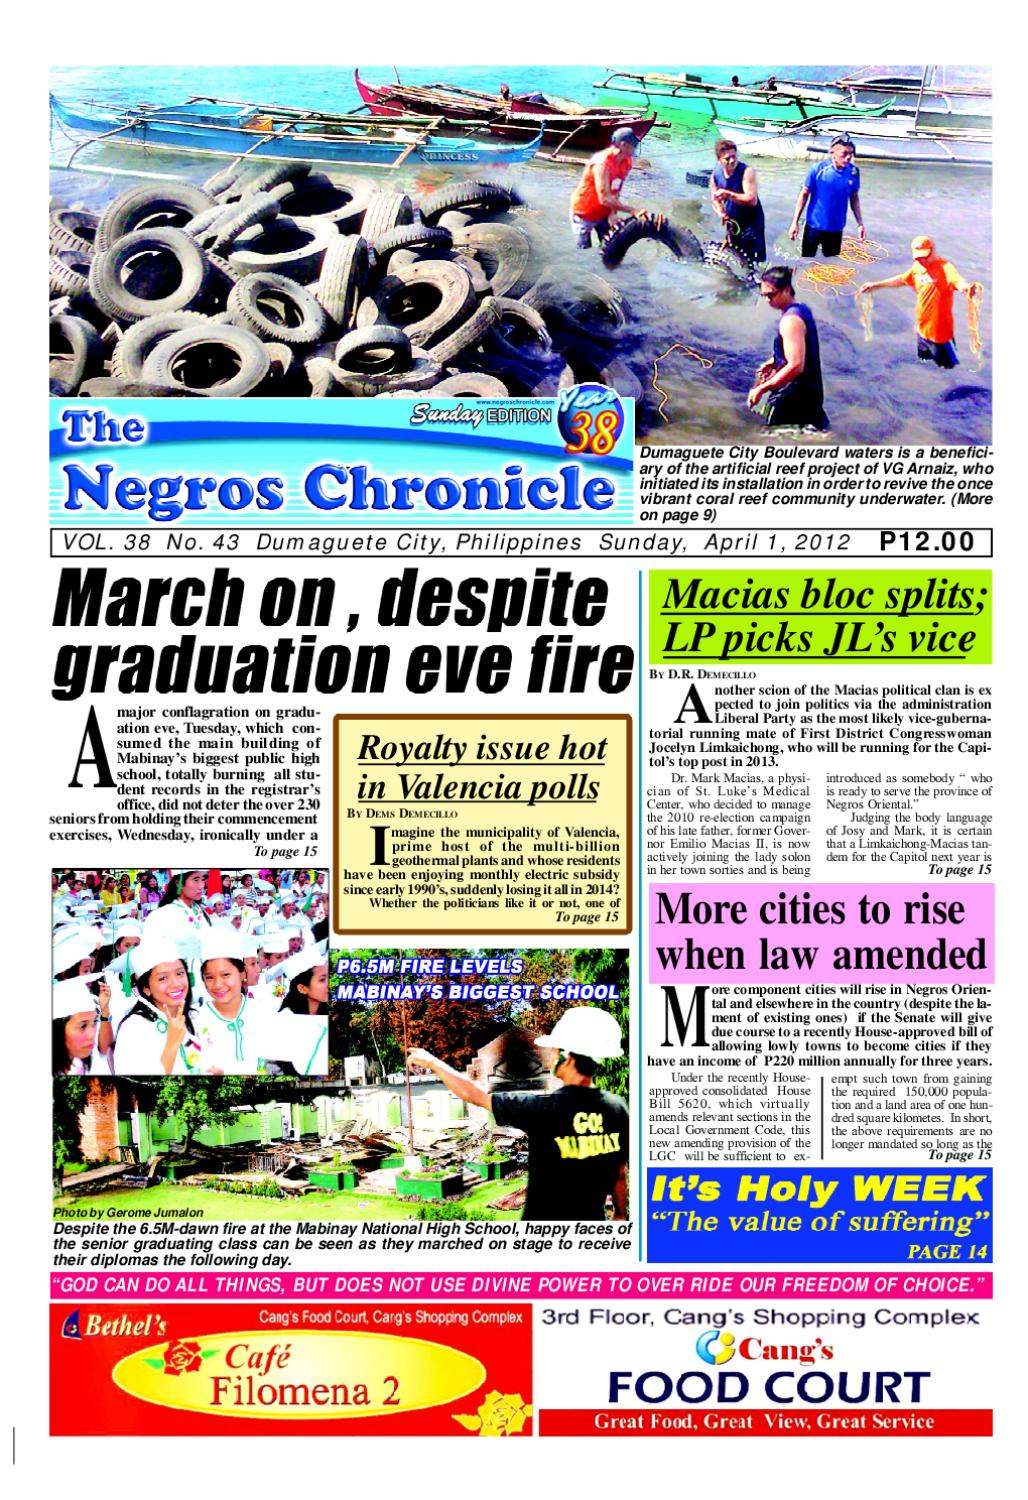 The Negros Chronicle April 01, 2012 issue by Gerard